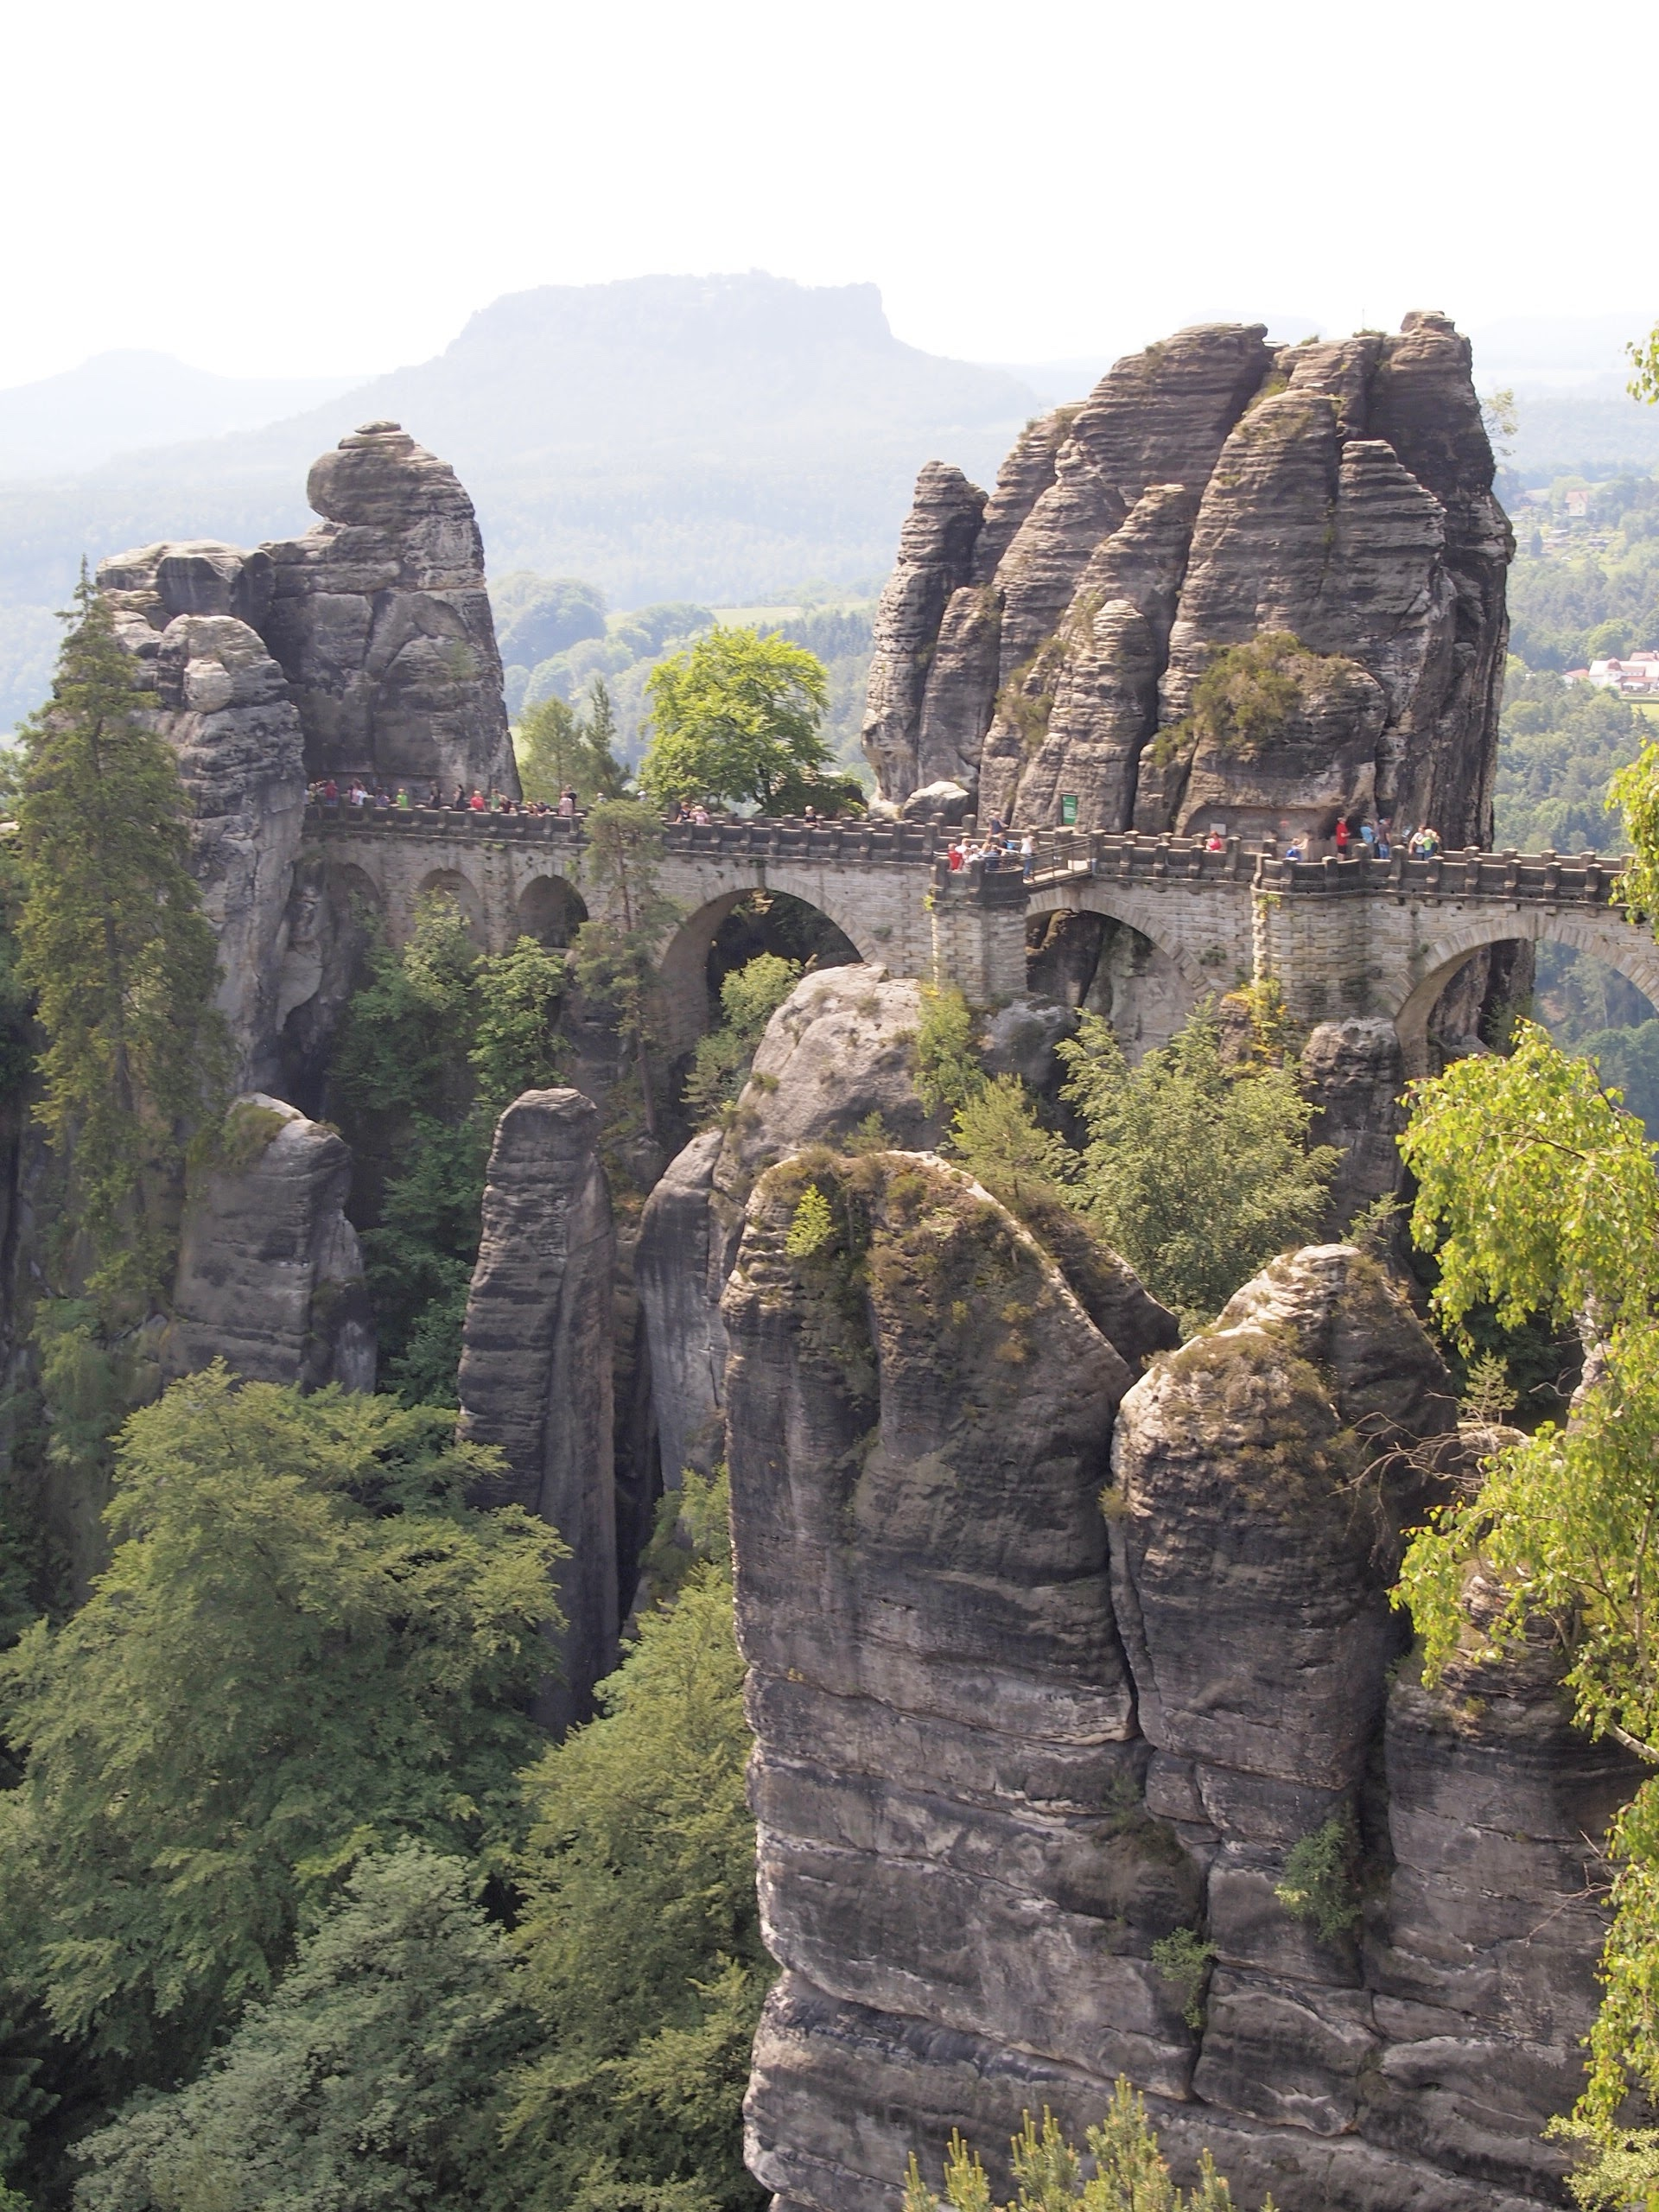 The famous Bastei bridge that's on every postcard sold here.